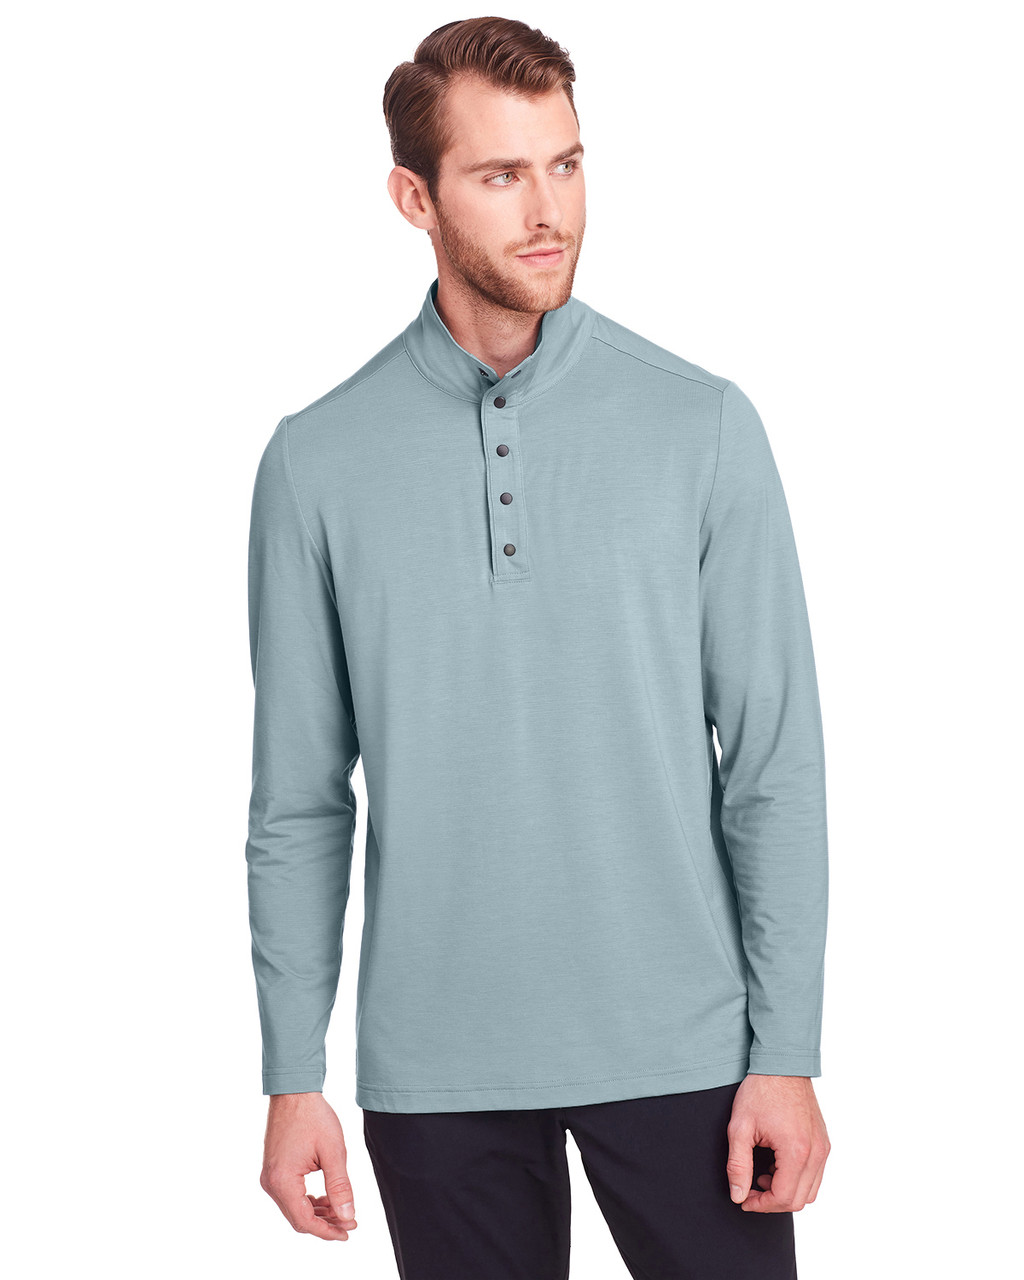 Opal Blue - NE400 North End Men's Jaq Snap-Up Stretch Performance Pullover Long Sleeve Shirt | BlankClothing.ca